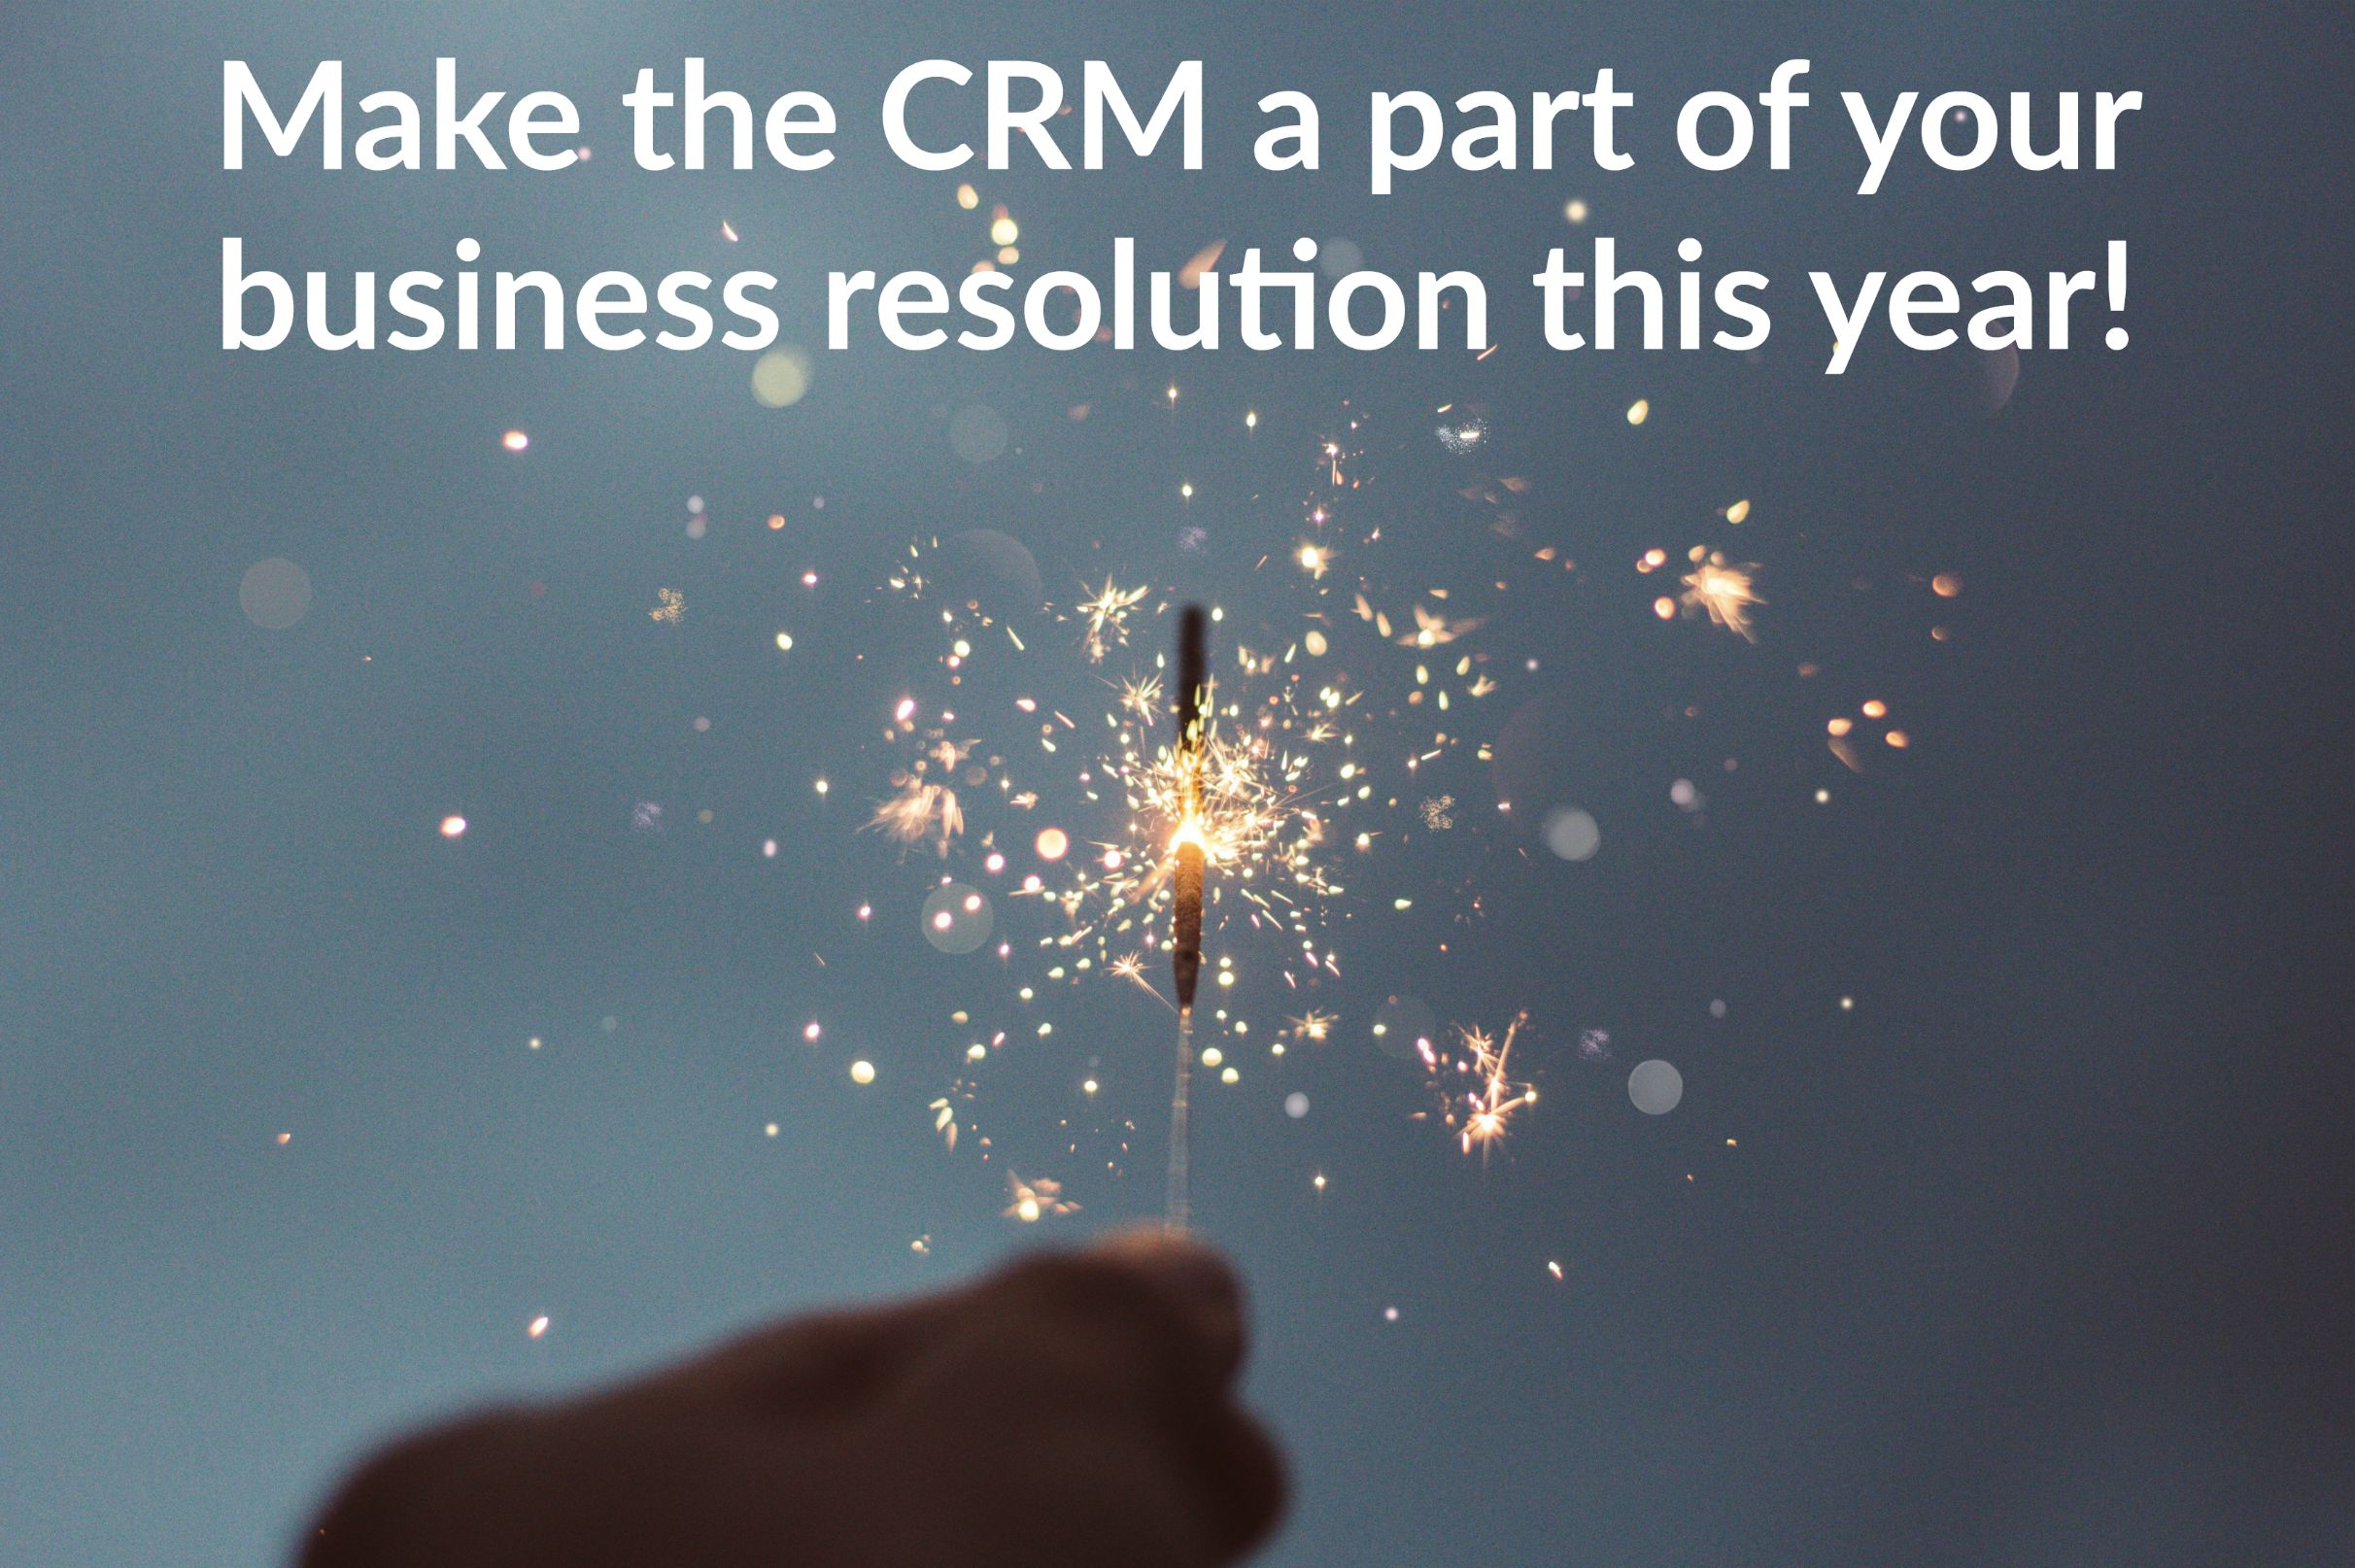 Make the CRM a part of your business resolution this year!